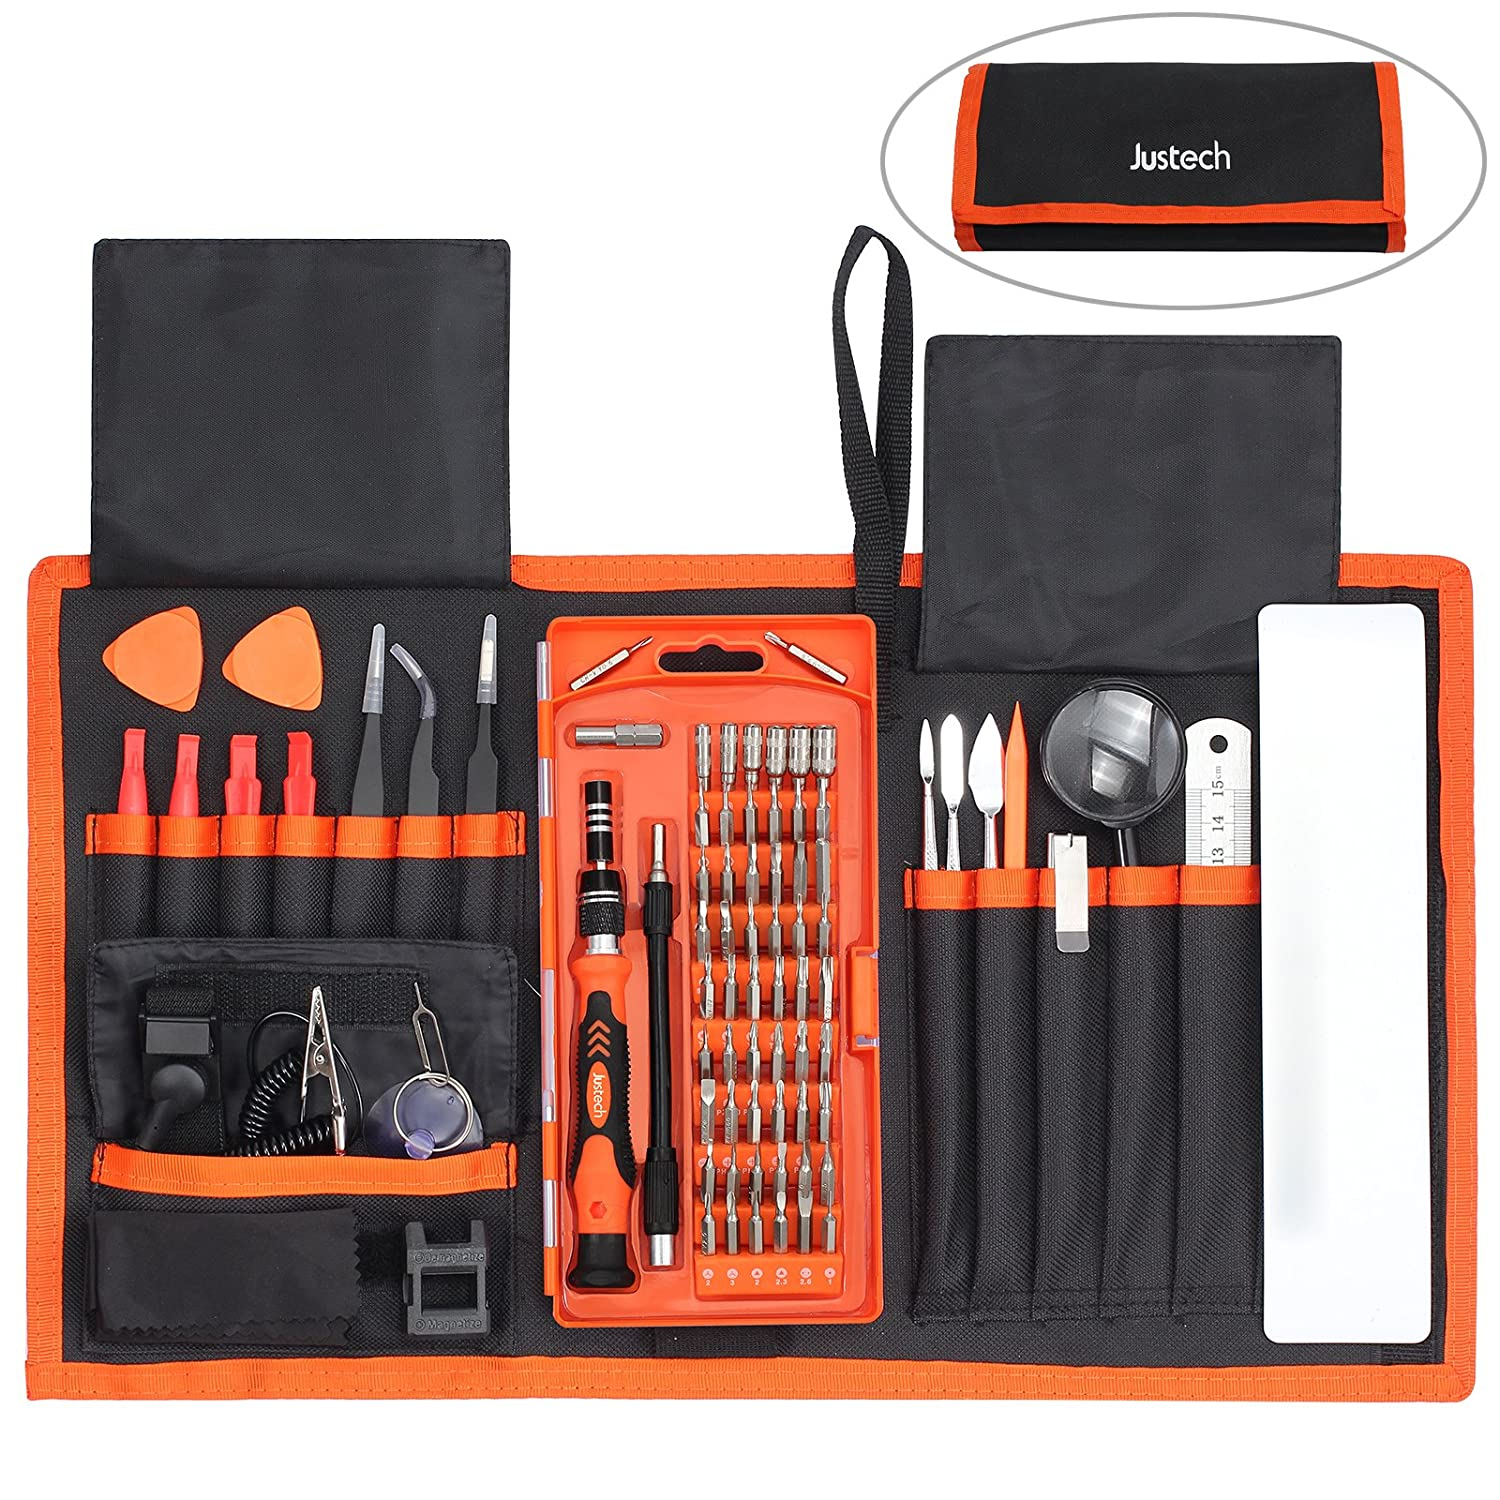 Justech Precision Screwdriver Set 82 in 1 Magnetic Mini Portable with 56 Bits Precision Driver Repair Tool for Portable Box For iPad iPhone Laptops PC Smartphones Watches and Other Devices-Orange